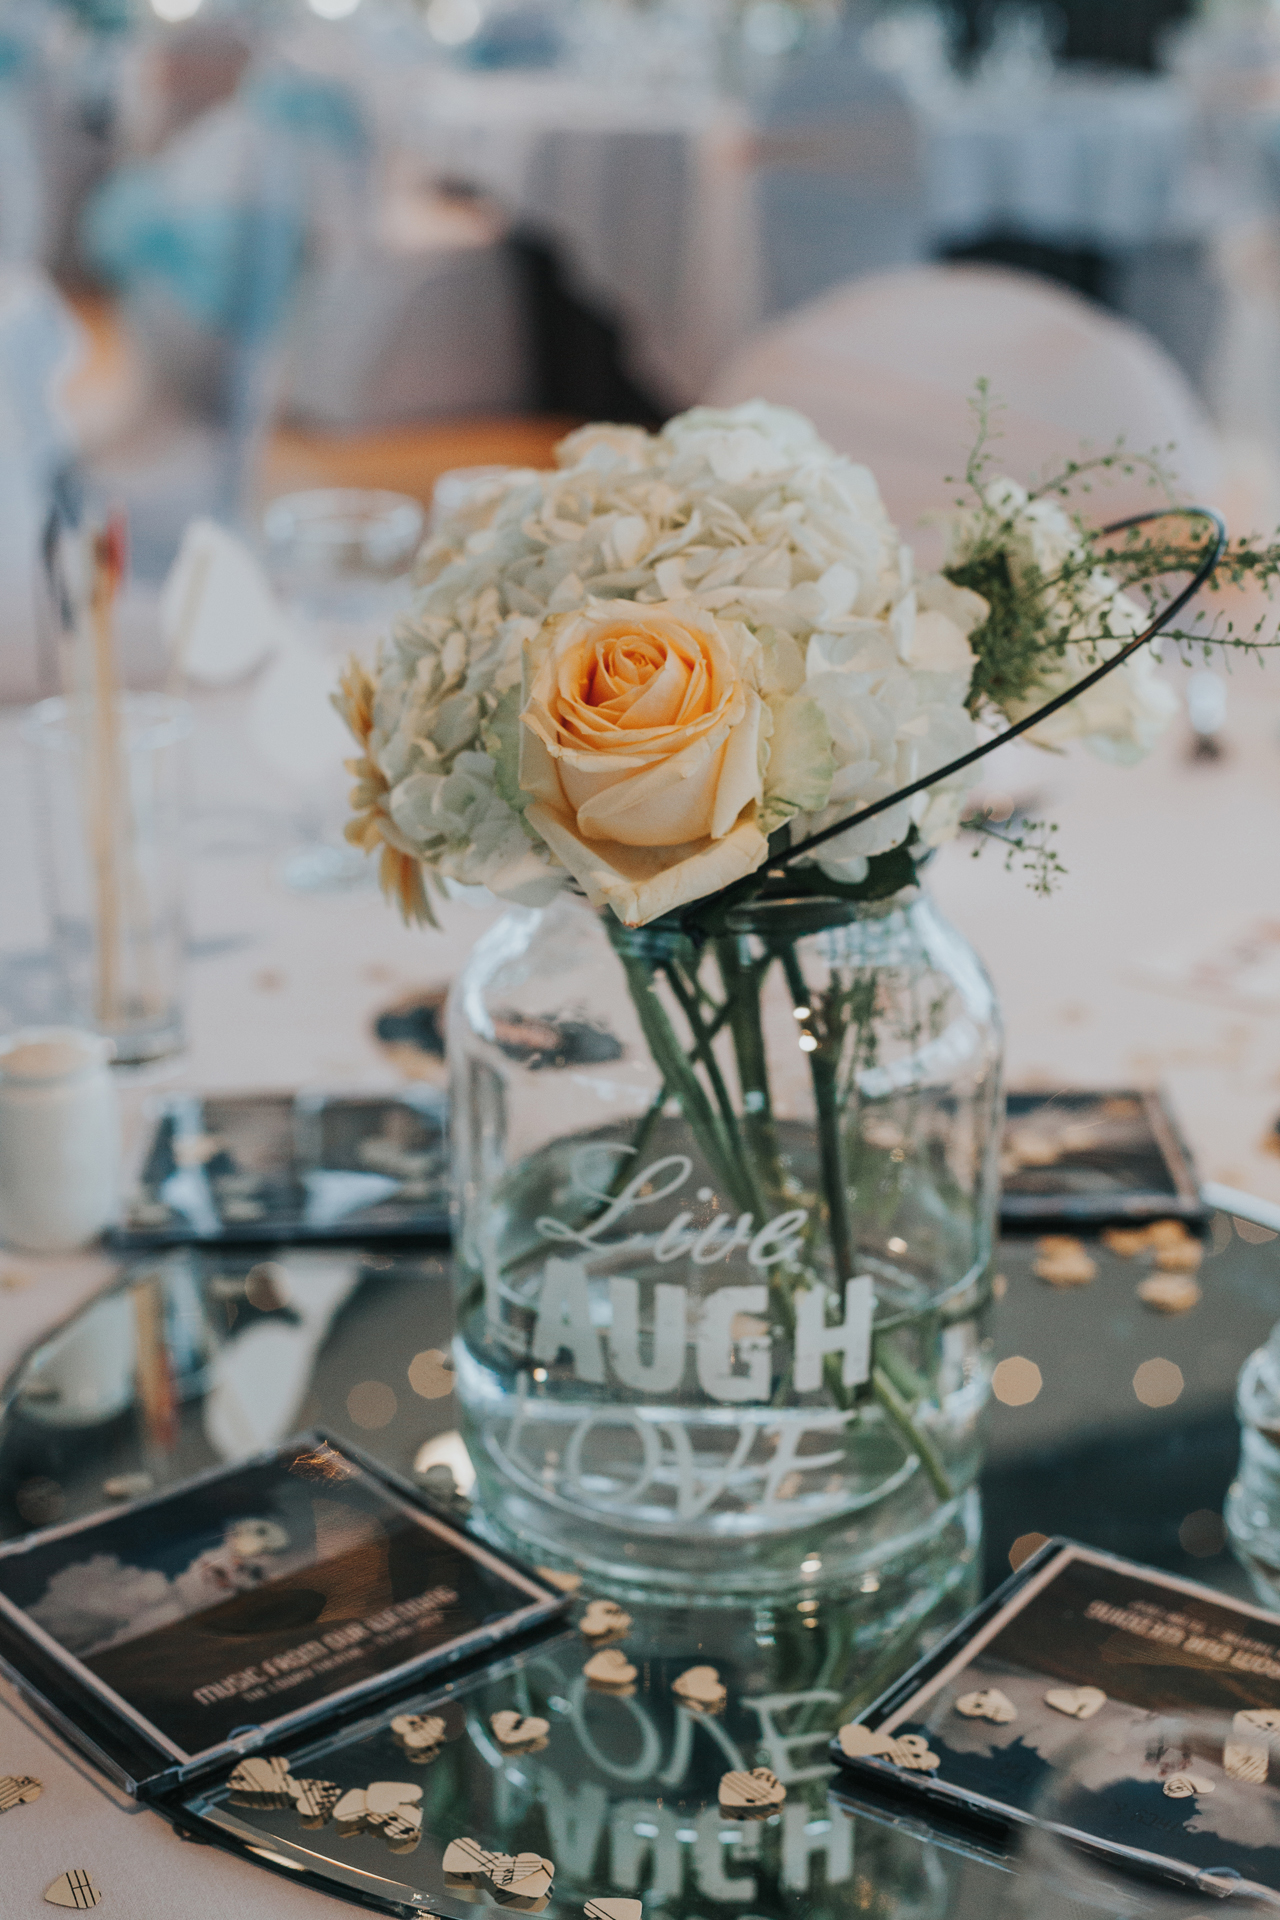 Roses in glass jars on the wedding table.